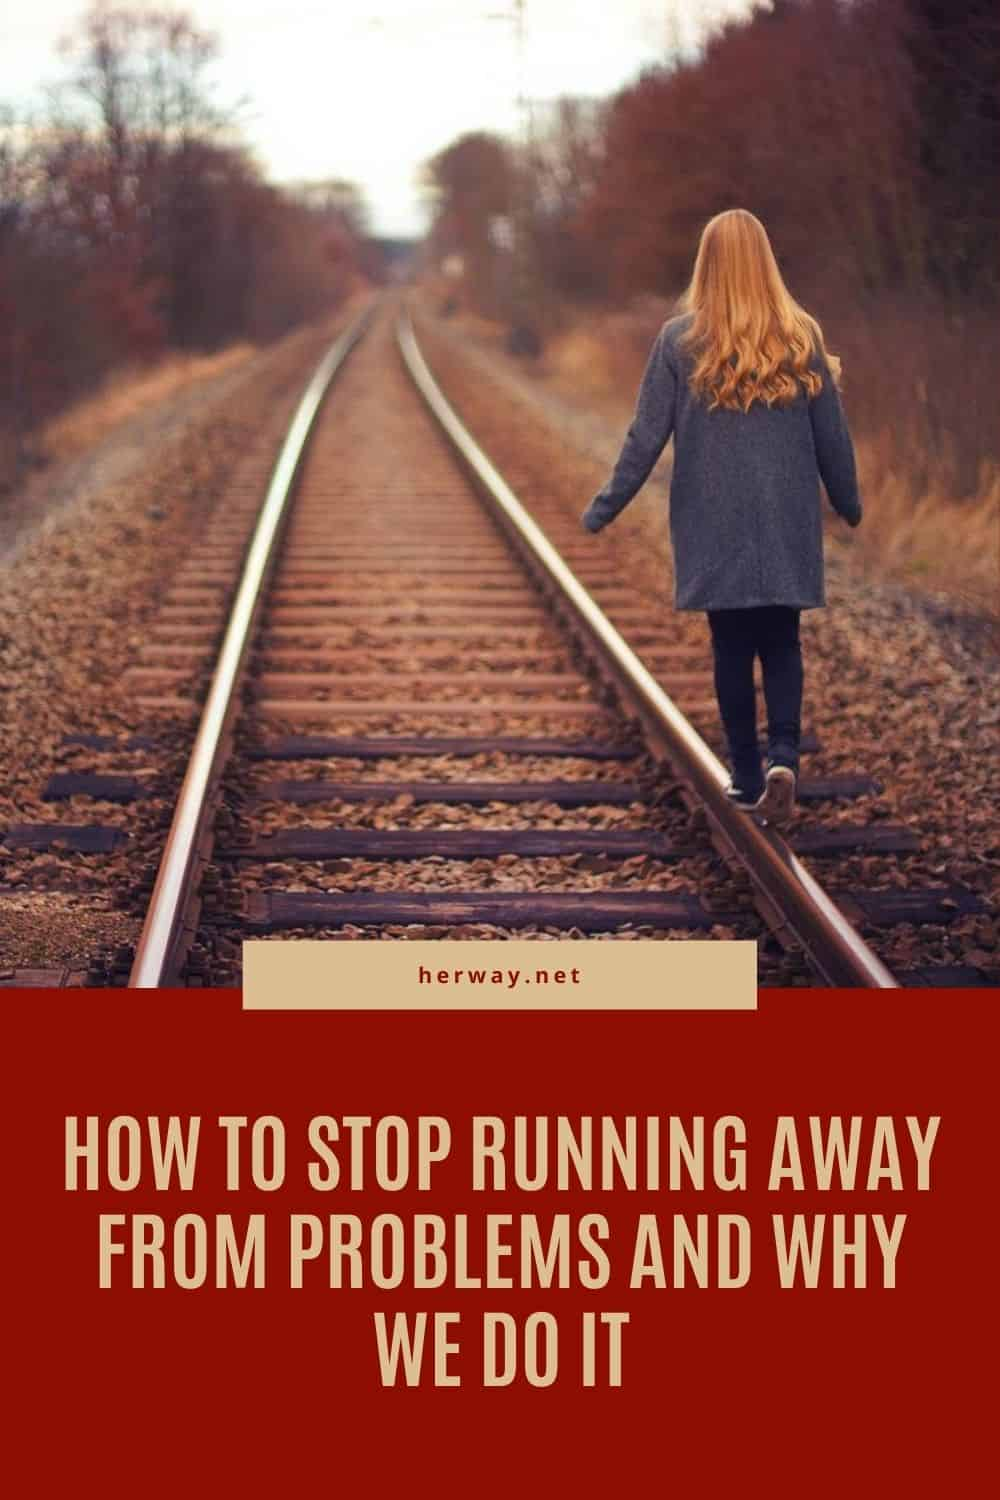 How To Stop Running Away From Problems And Why We Do It